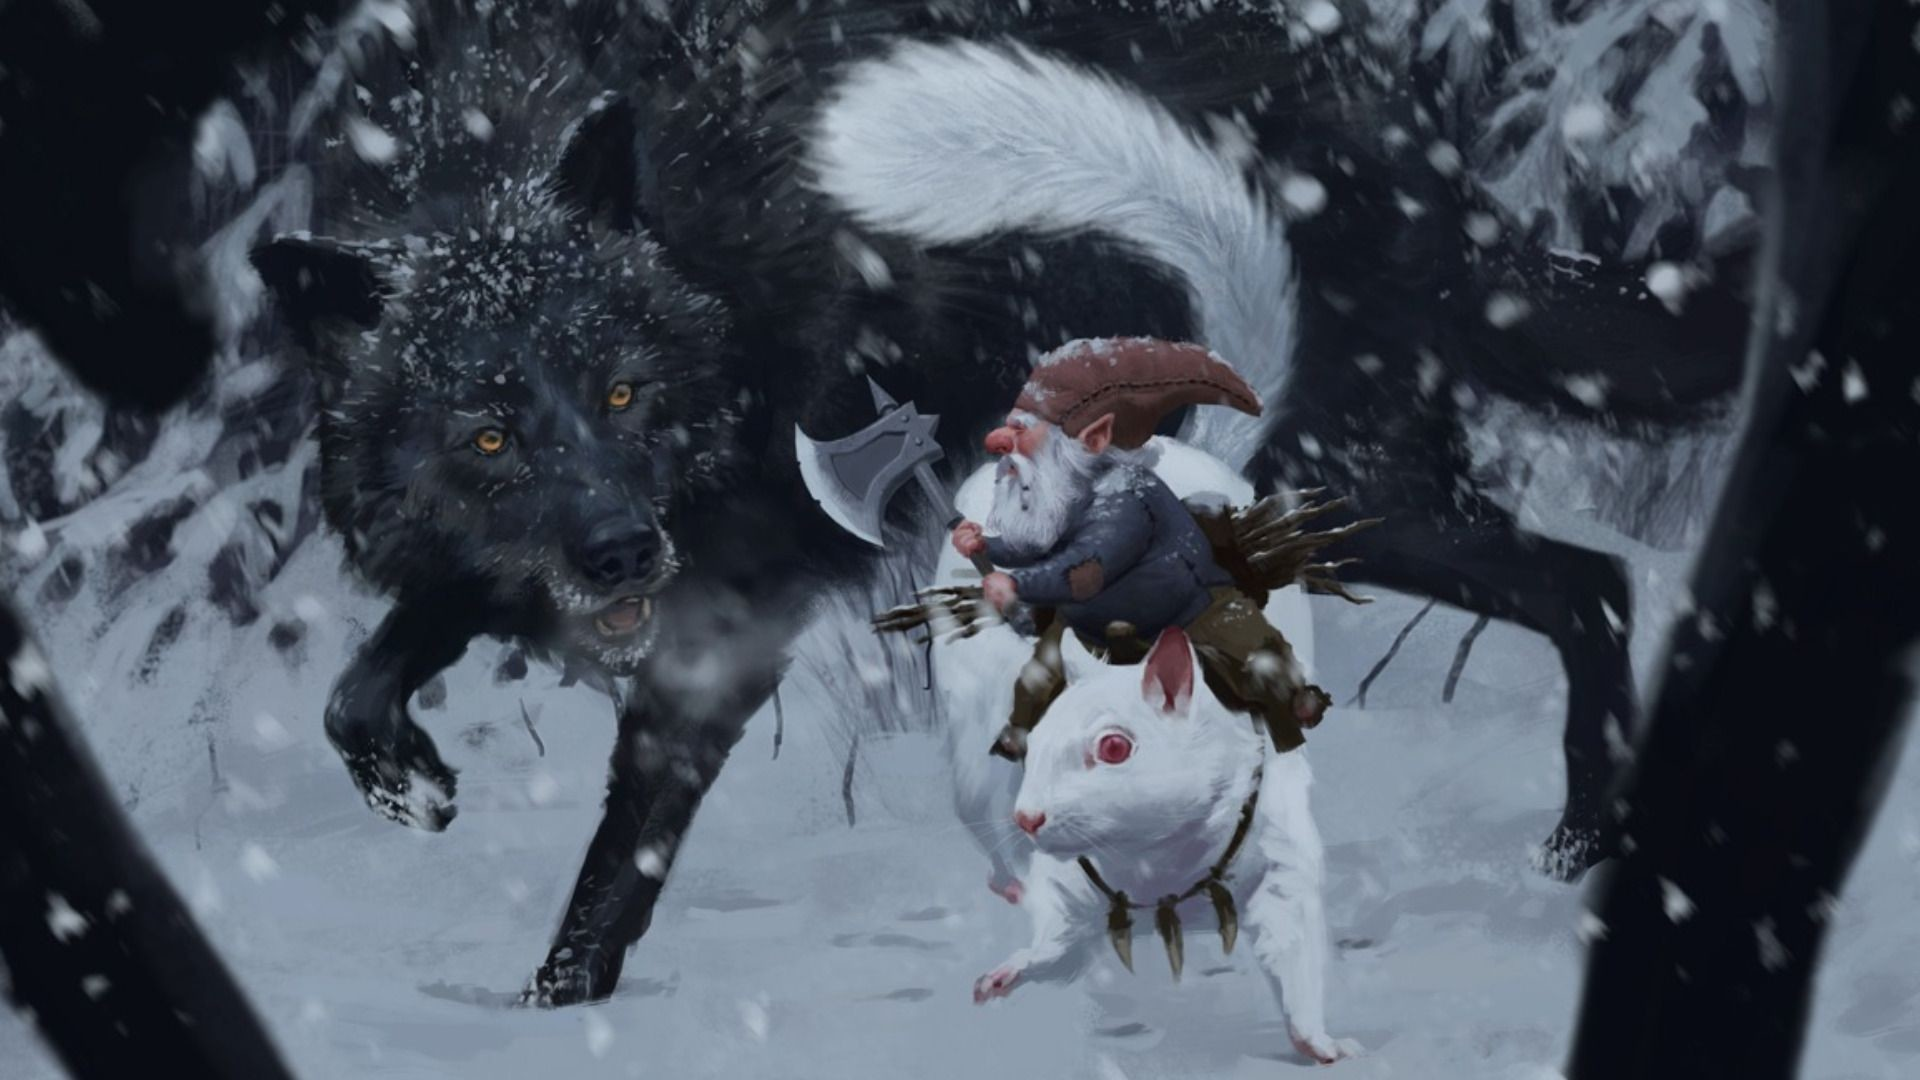 Res: 1920x1080, Dwarf fighting the wolf HD Wallpaper